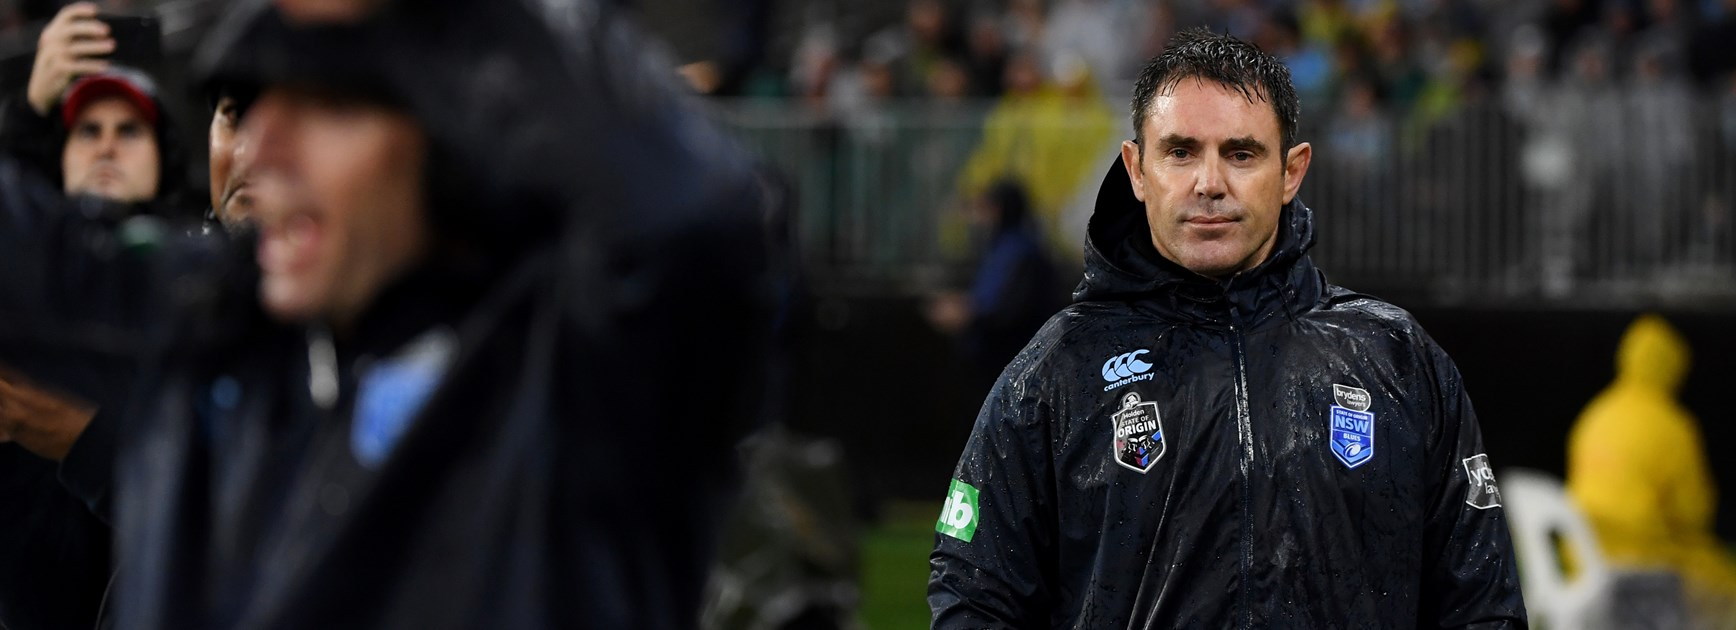 Fittler calls on refs to keep late hits in line